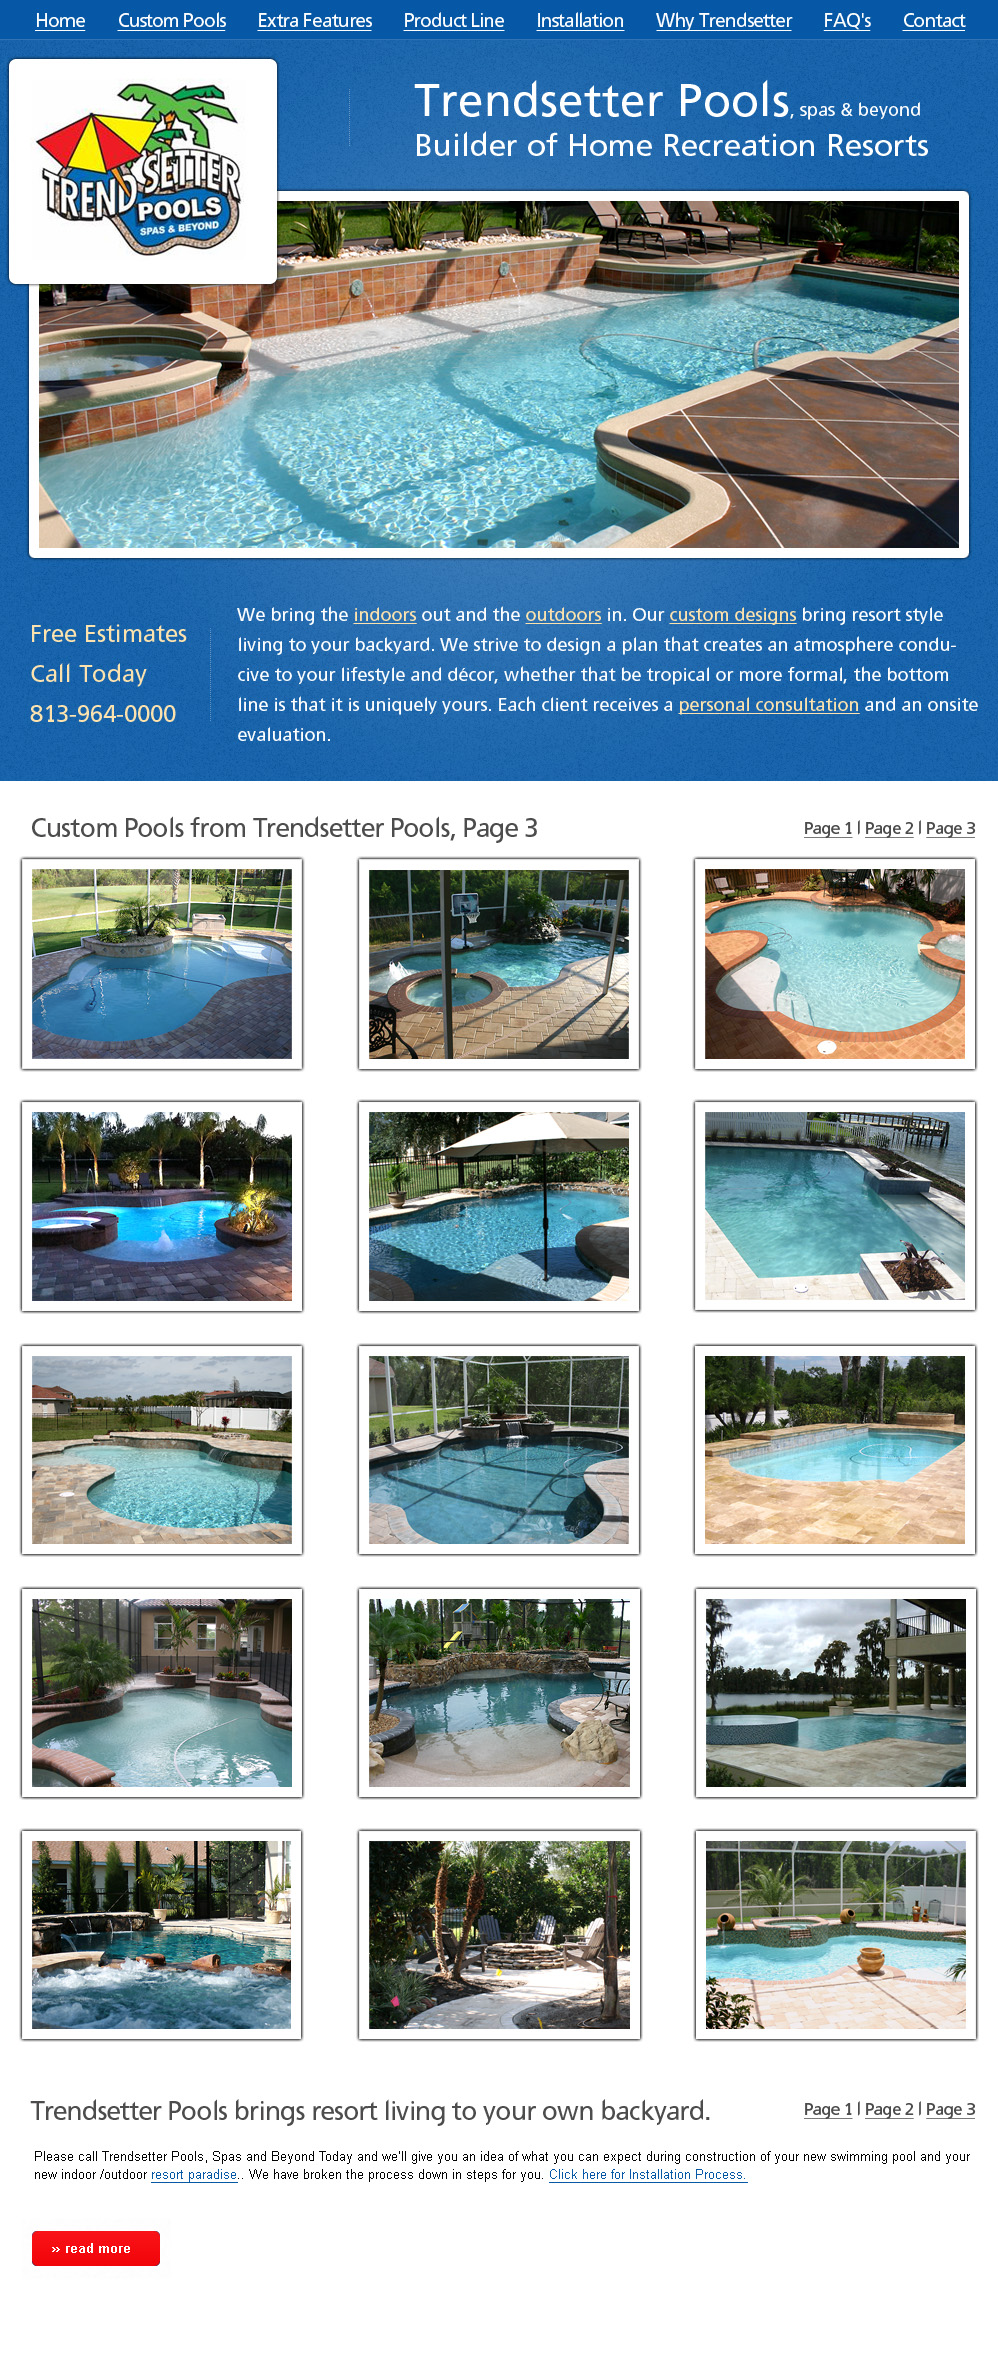 Pools And Custom Spas At Trendsetter Tampa Florida Call Today 813 964 0000